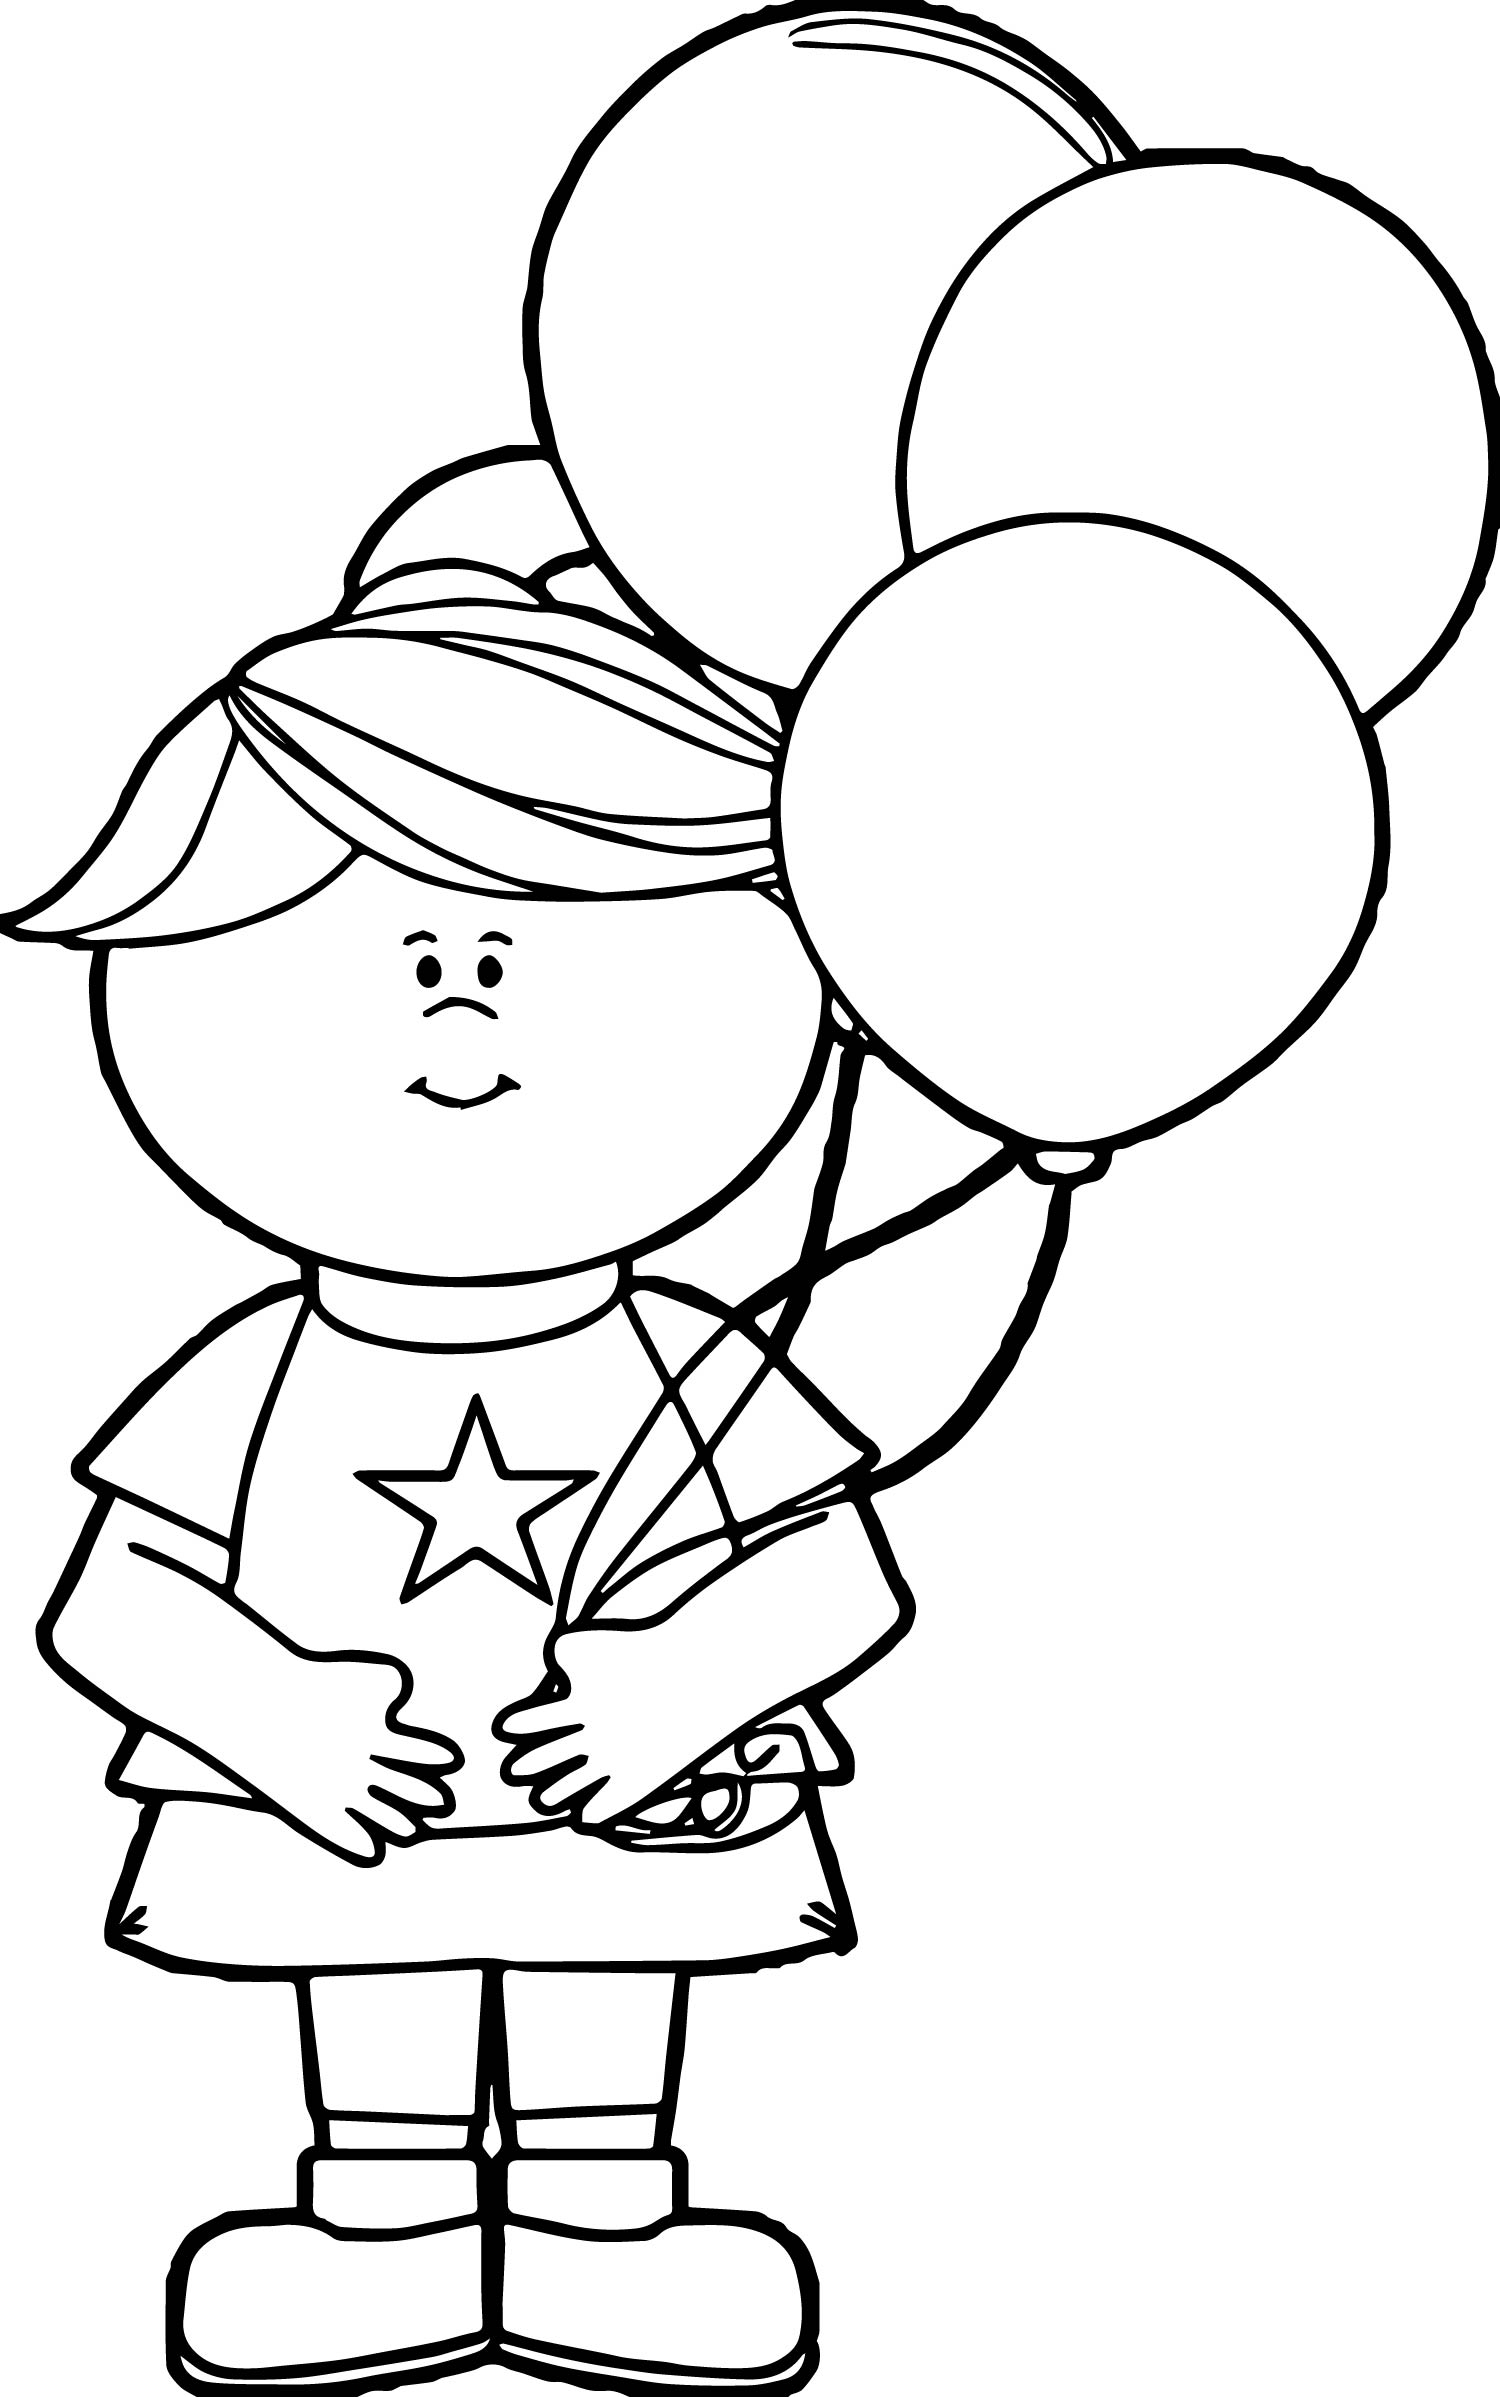 Balloons Coloring Pages 4 Coloring Pages